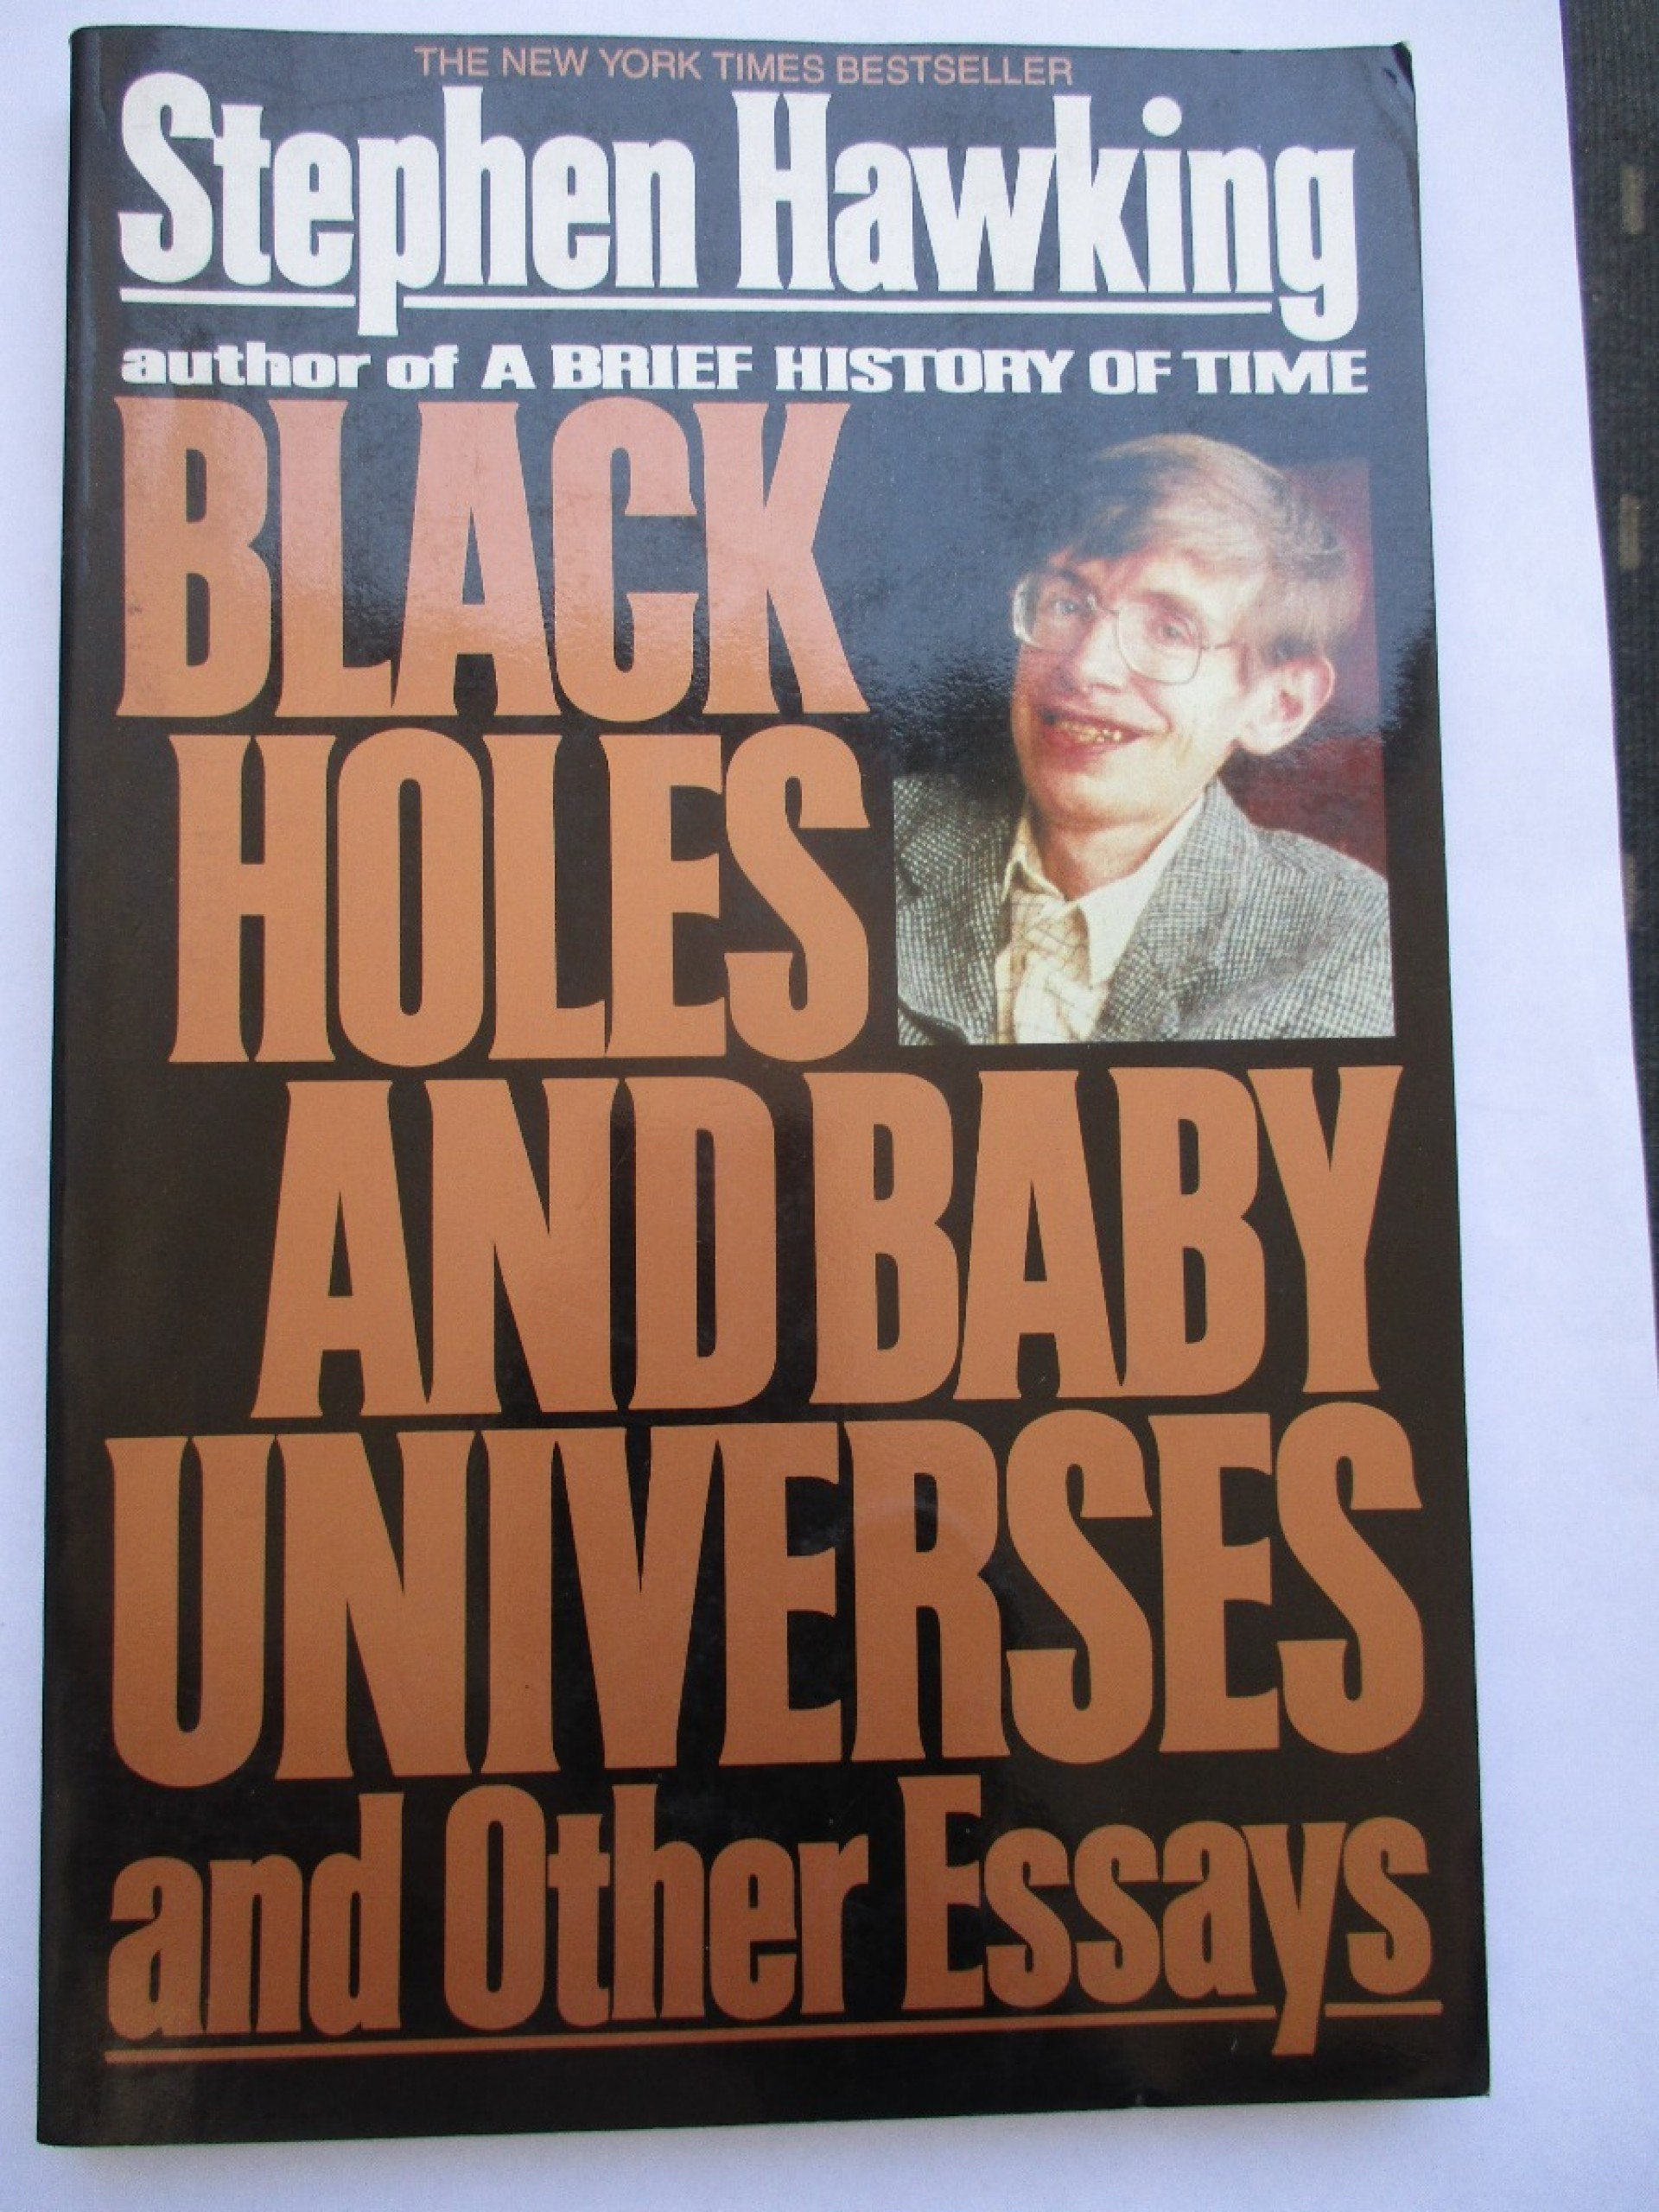 017 Black Holes And Baby Universes Other Essays Essay Example Stephen Hawking D Nq Np 965748 Mlc27099404600 032018 Unique Review Ebook Free Download Amazon 1920